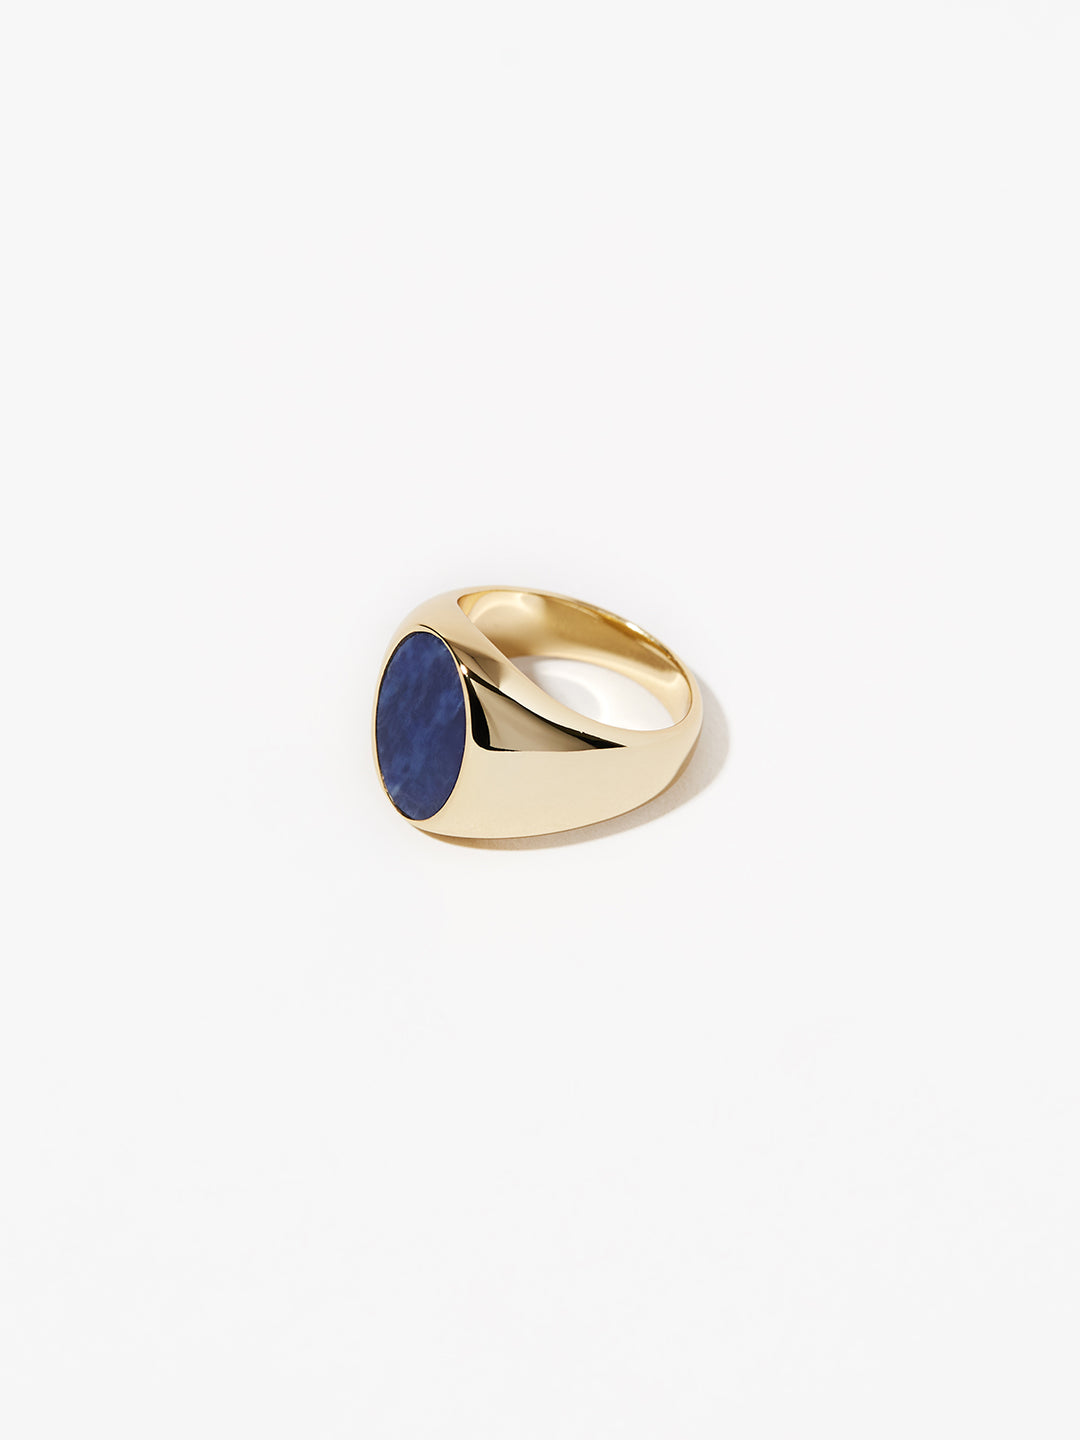 Ana Luisa Jewelry Rings Oval Signet Ring Madison Blue Gold